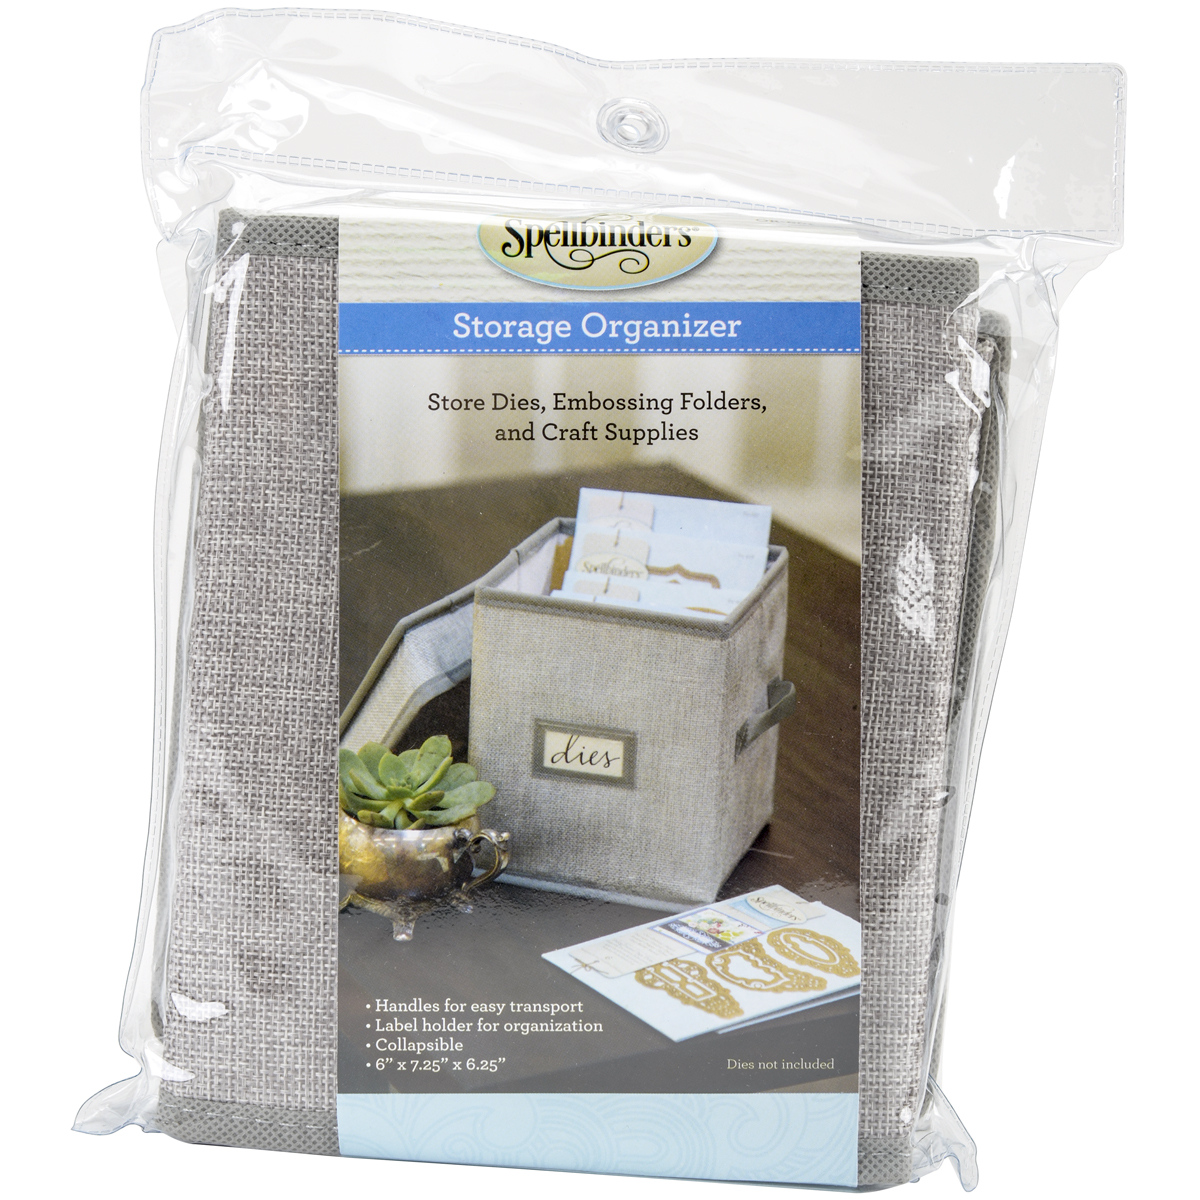 Spellbinders Collapsible Canvas Storage Organizer-6' x 7.25' x 6.25' Cube